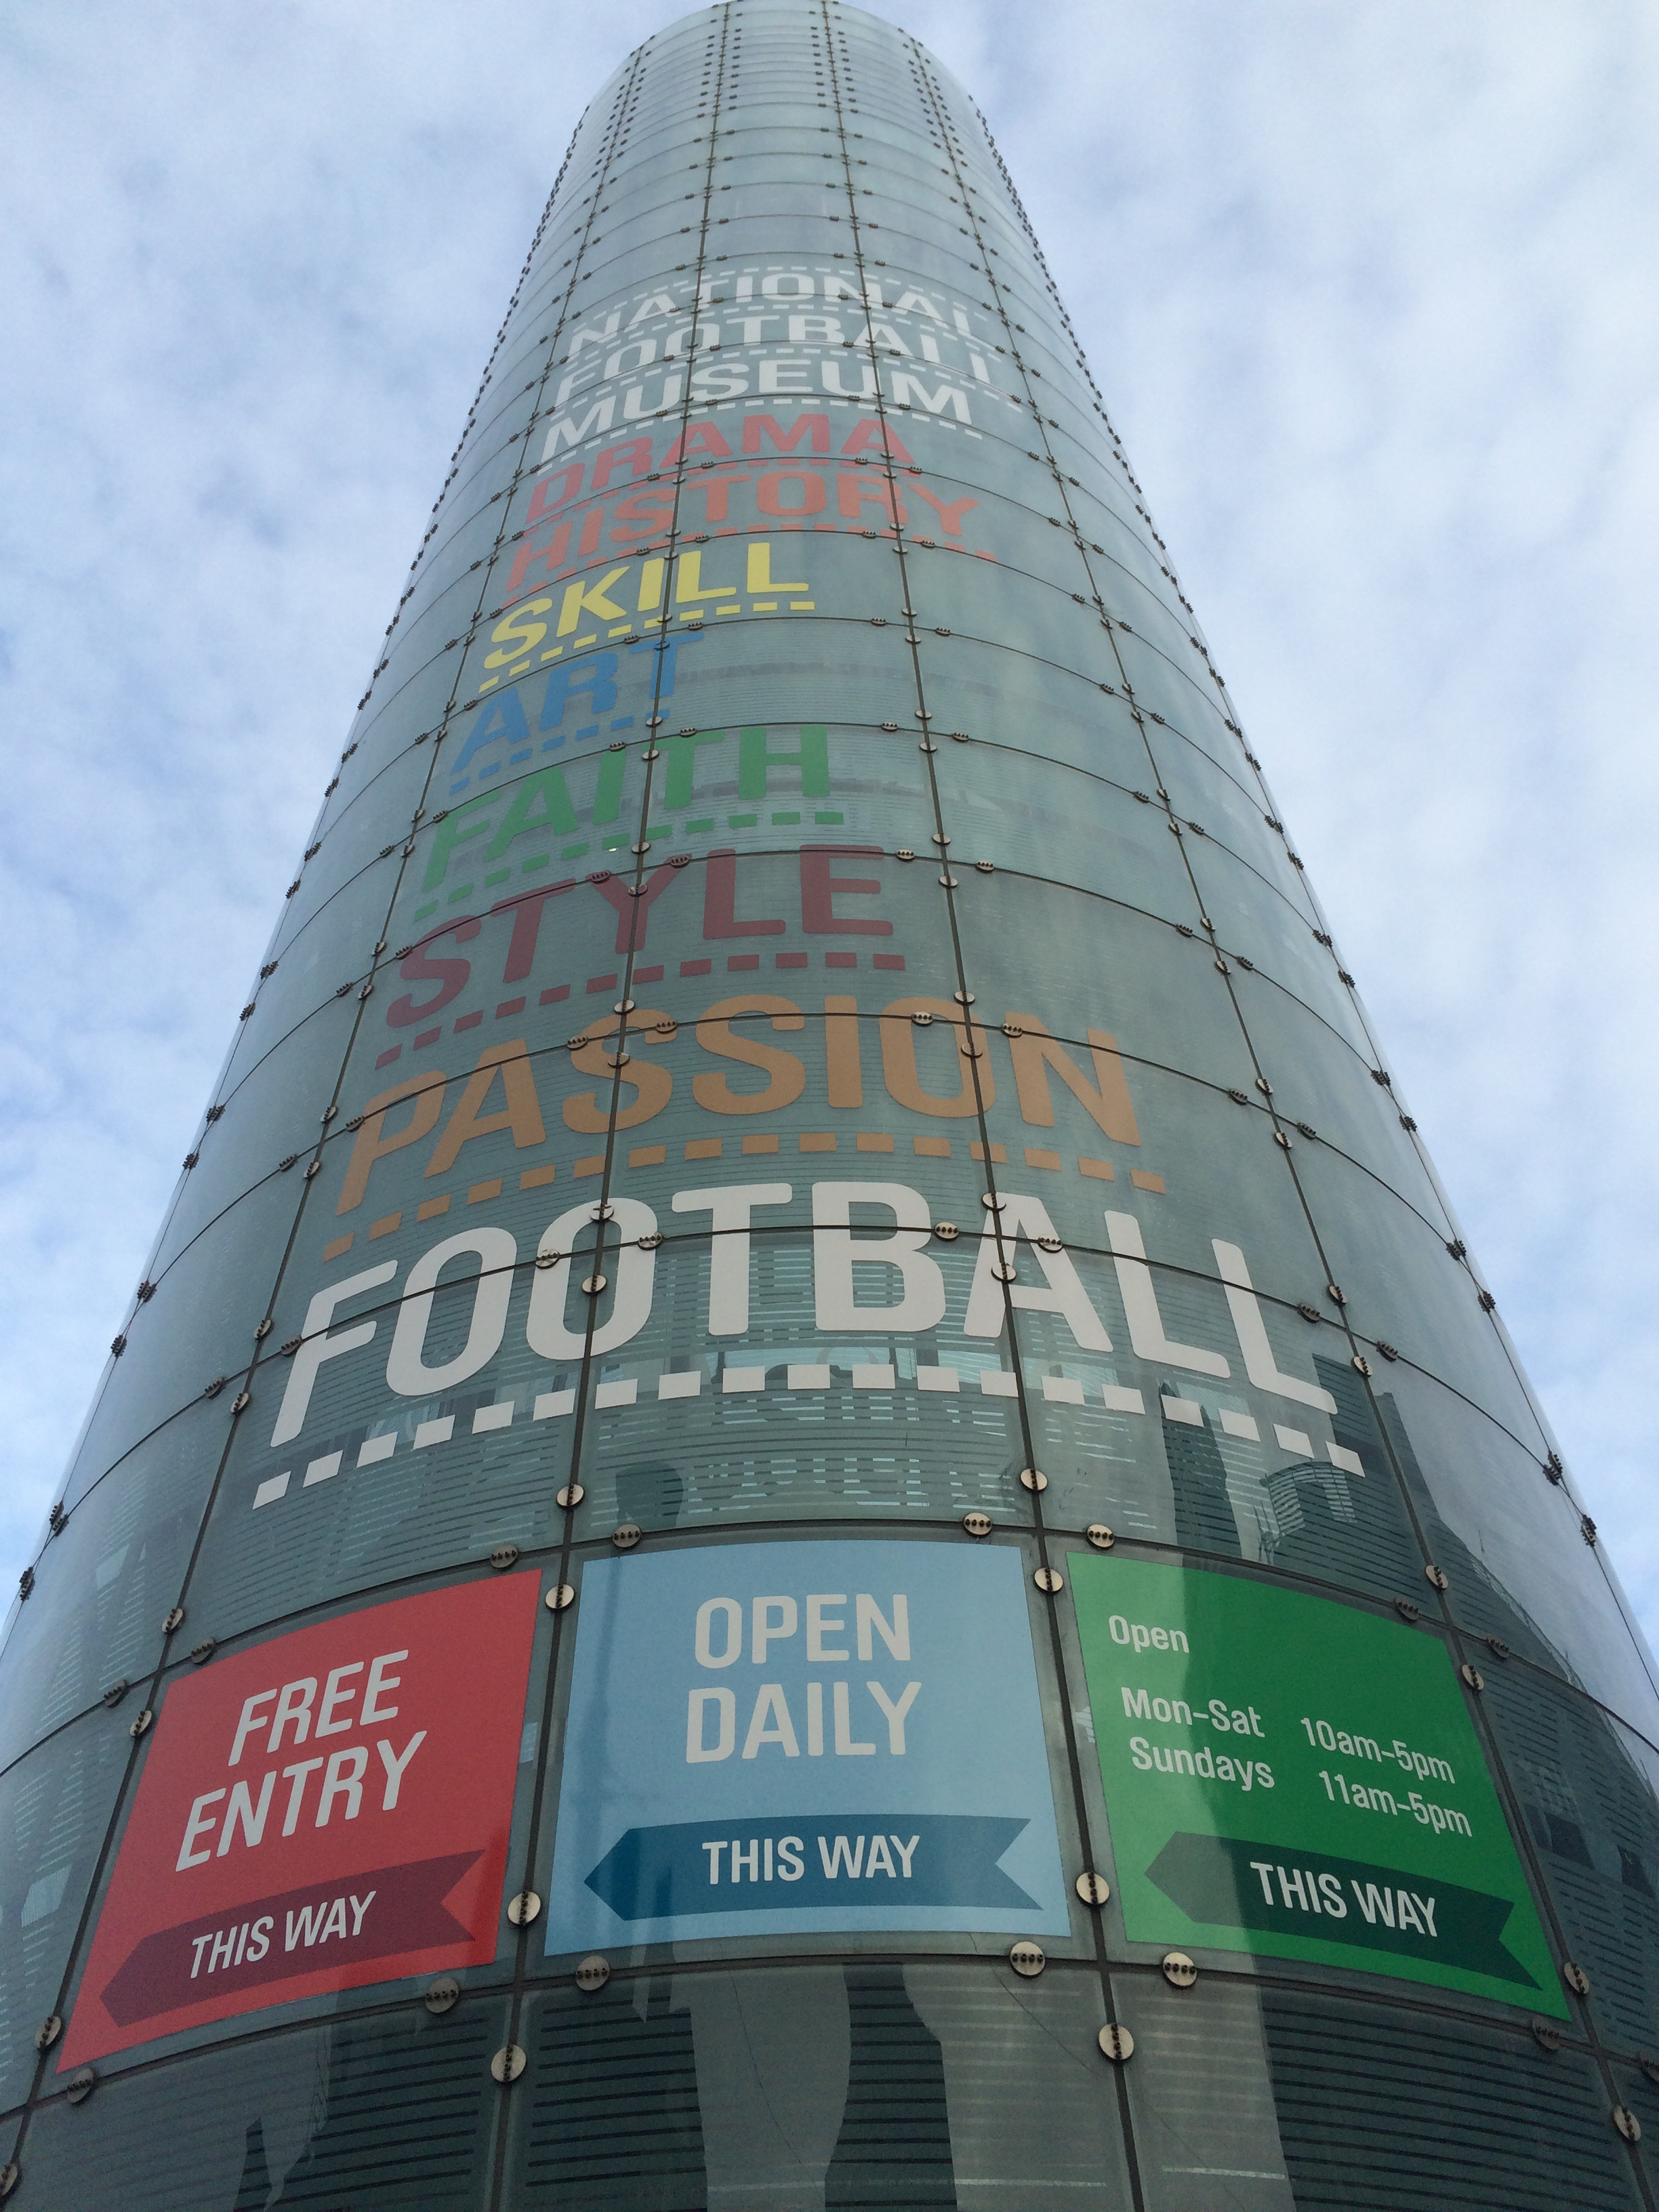 The Urbis building used to contain a Manchester-themed museum before the National Football Museum moved there from Preston North End's Deepdale stadium.